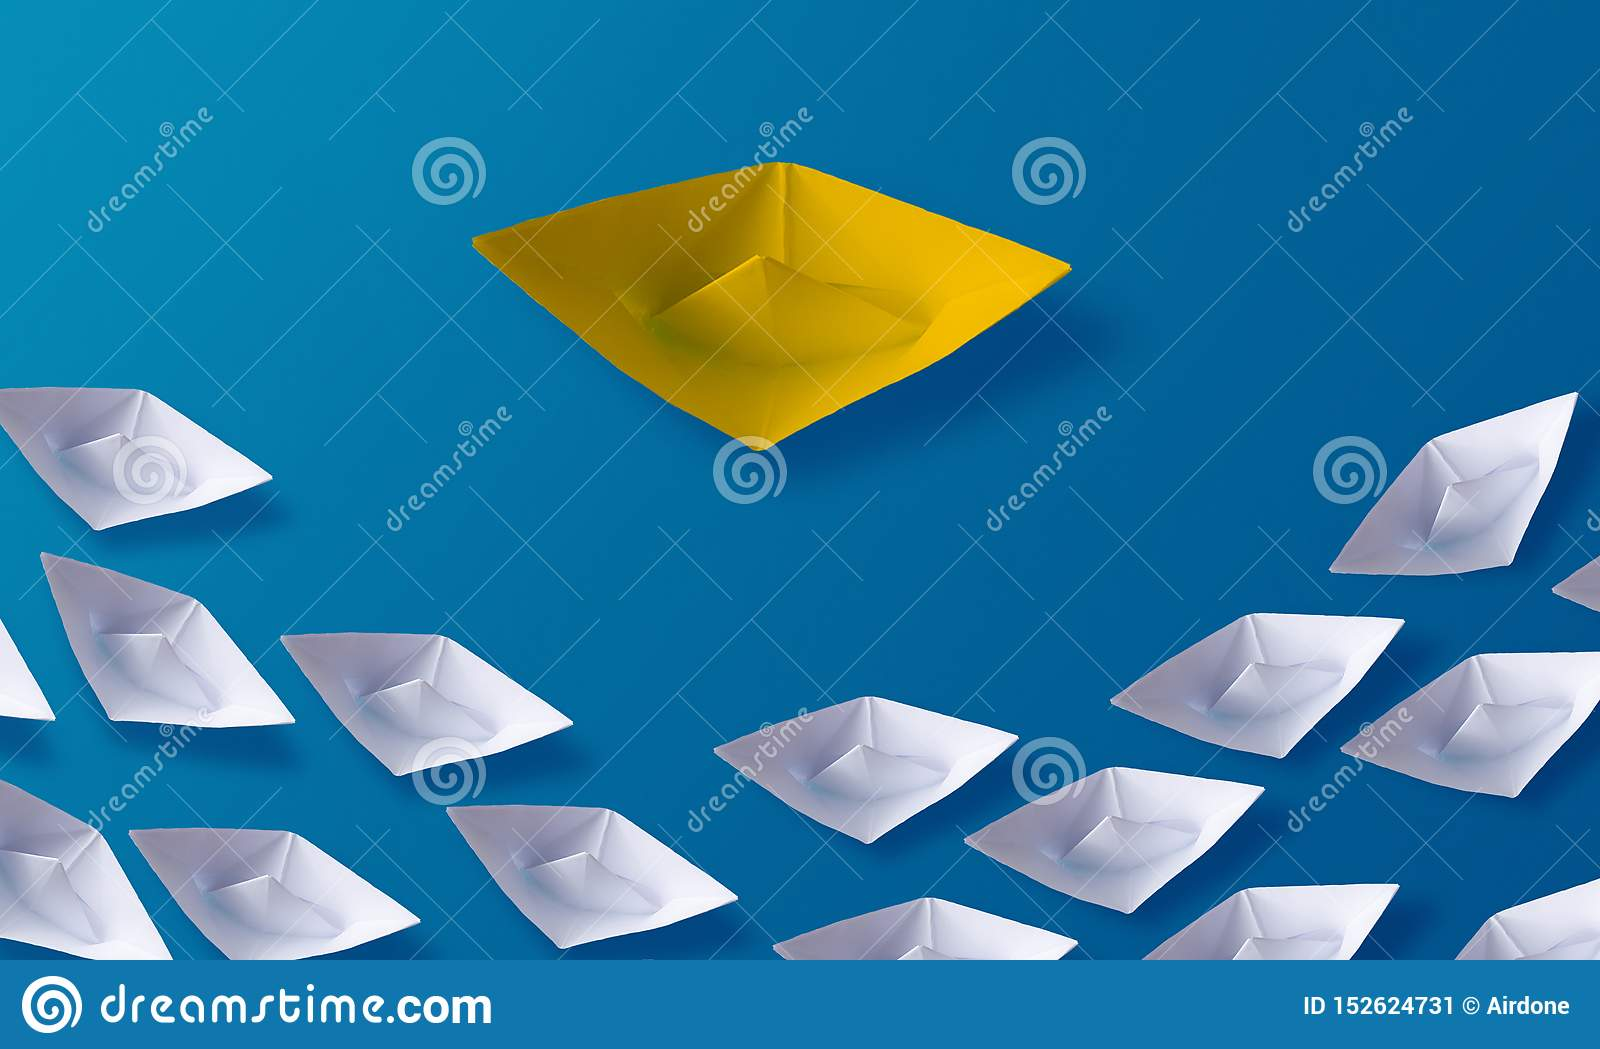 Individuality Be Different Concept, Yellow Origami Paper Boat and White Boats